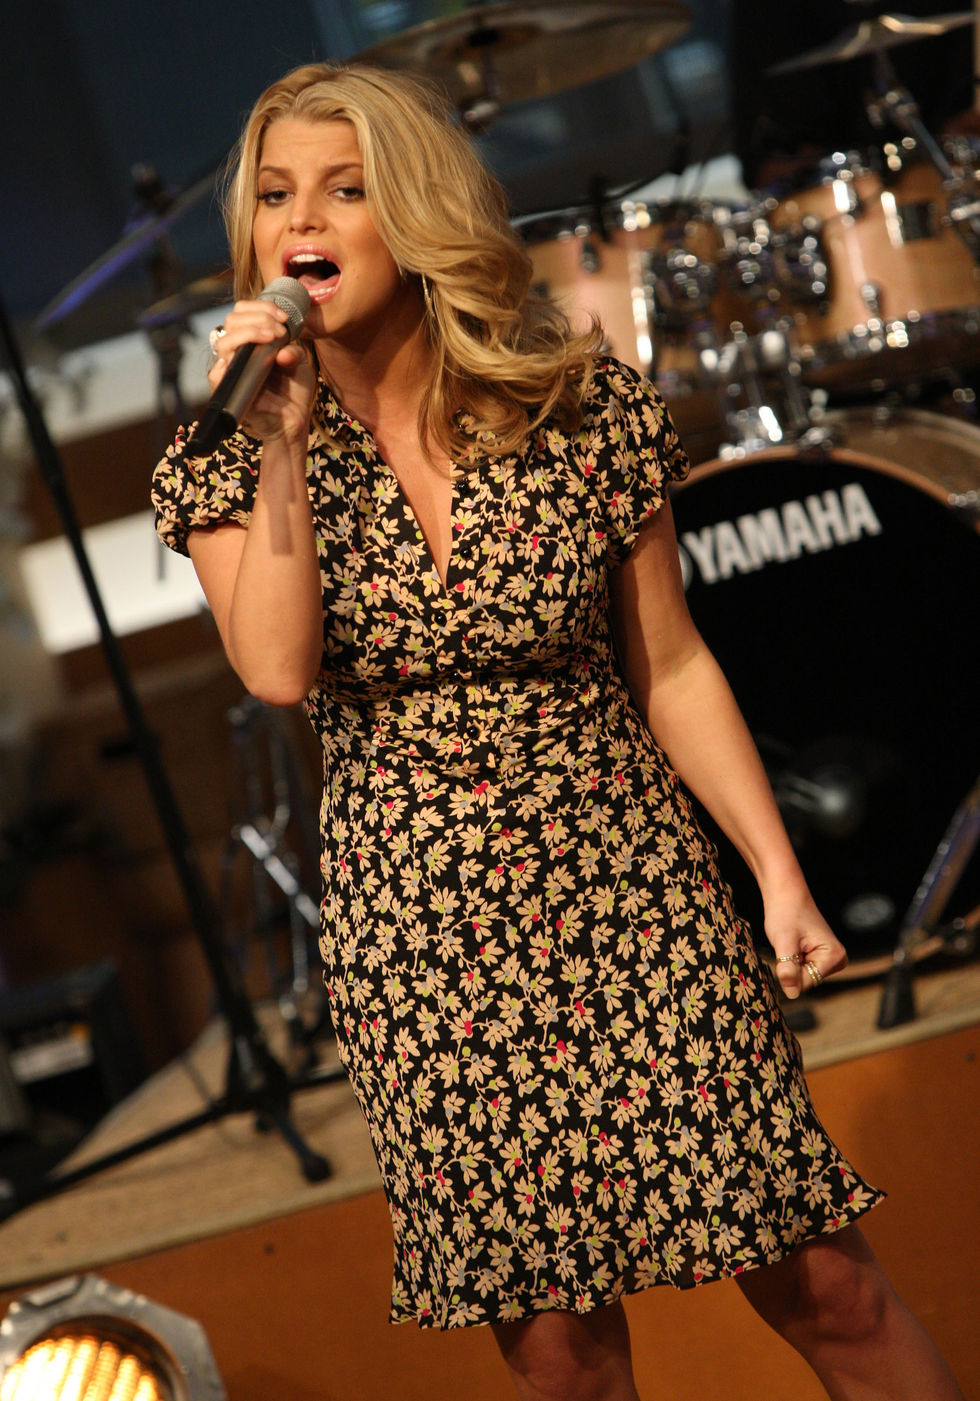 jessica-simpson-performs-at-cbs-the-early-show-in-new-york-city-06